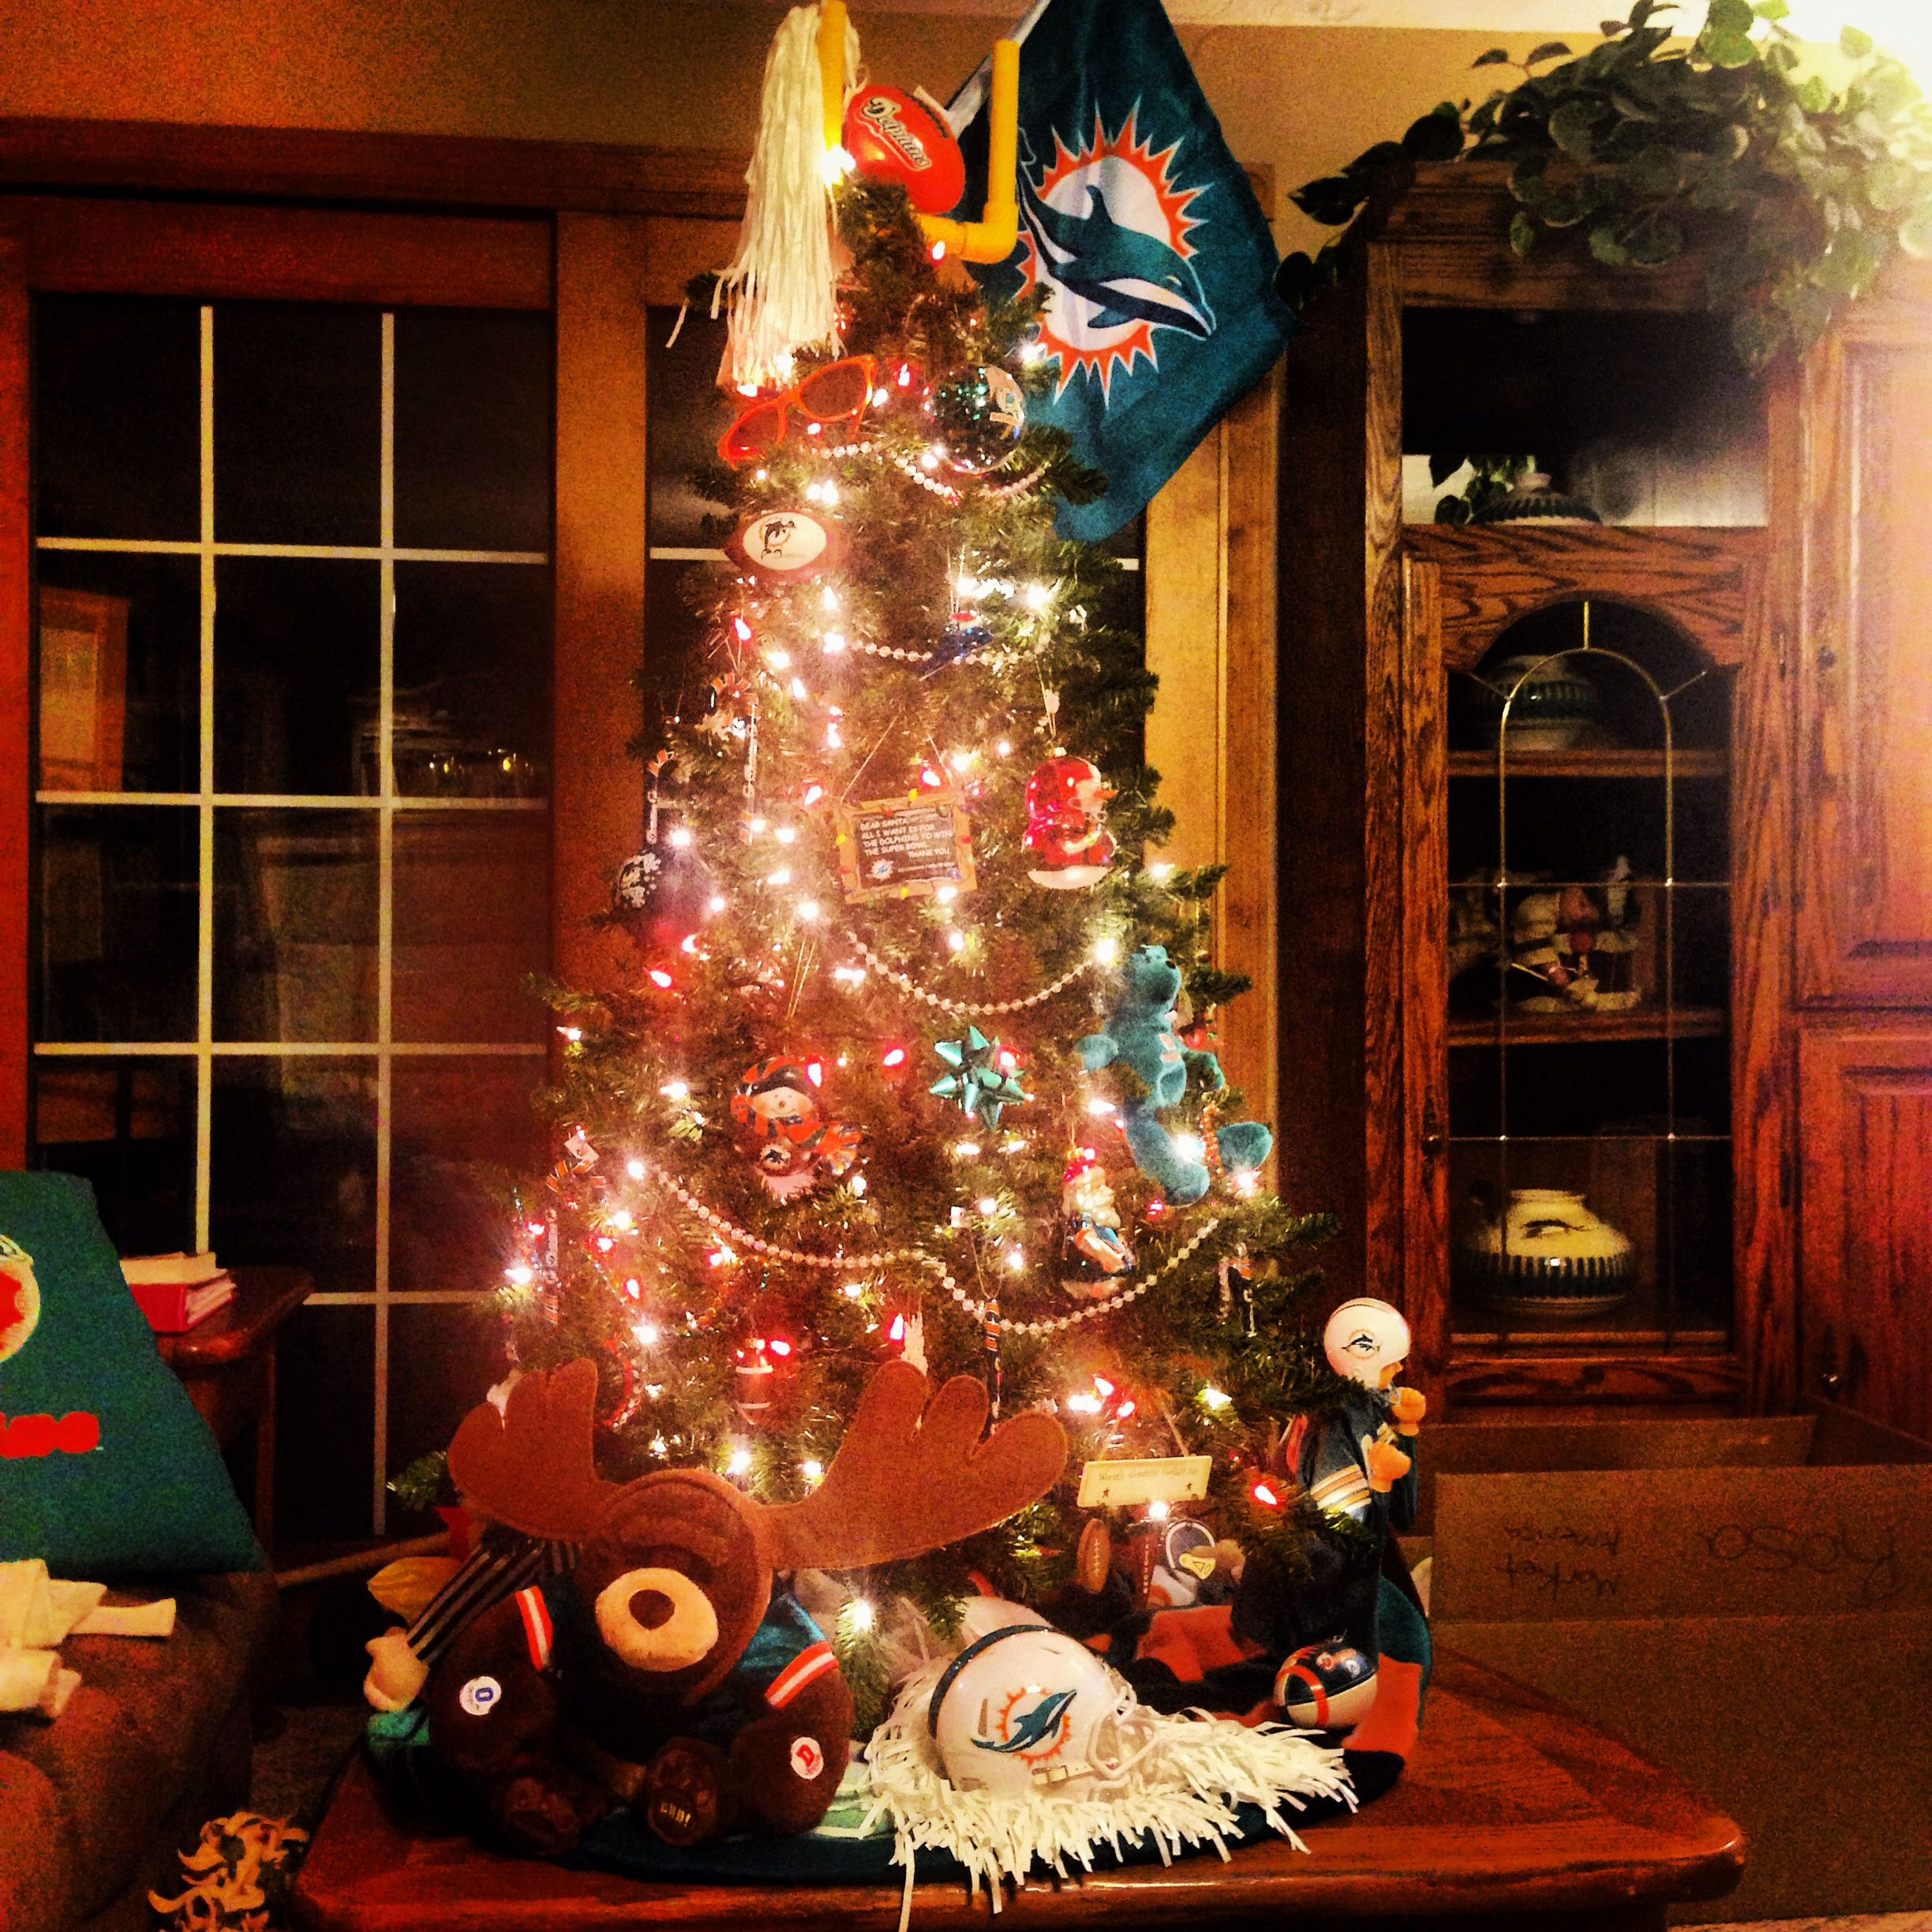 Miami Dolphins Christmas Tree!